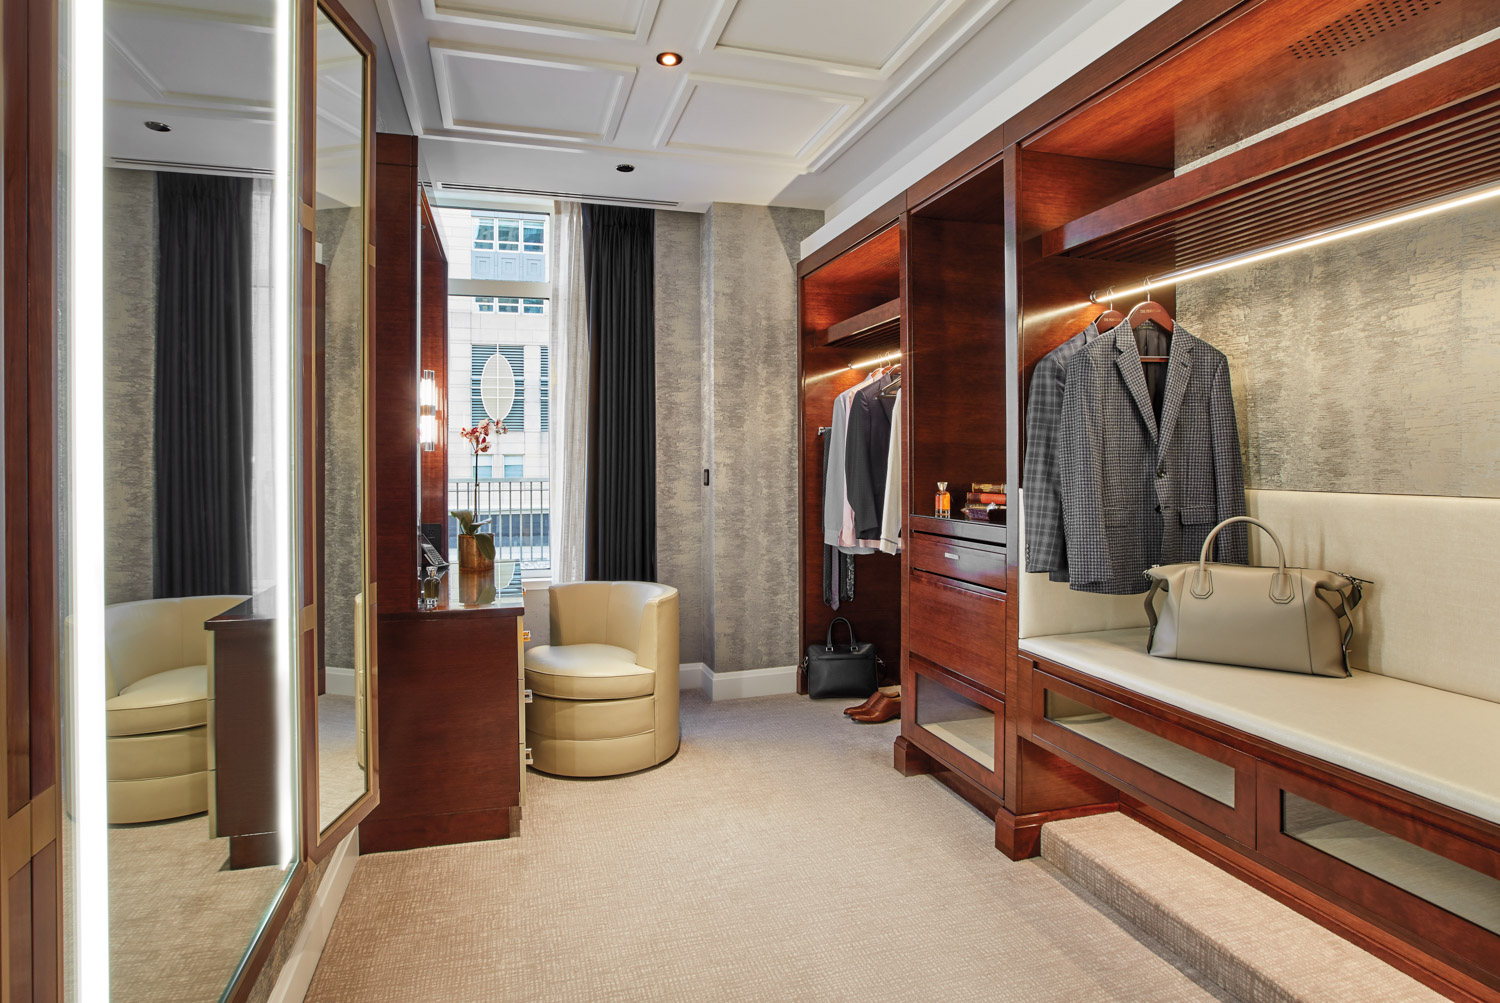 Walk-in closet in hotel suite with wood shelving